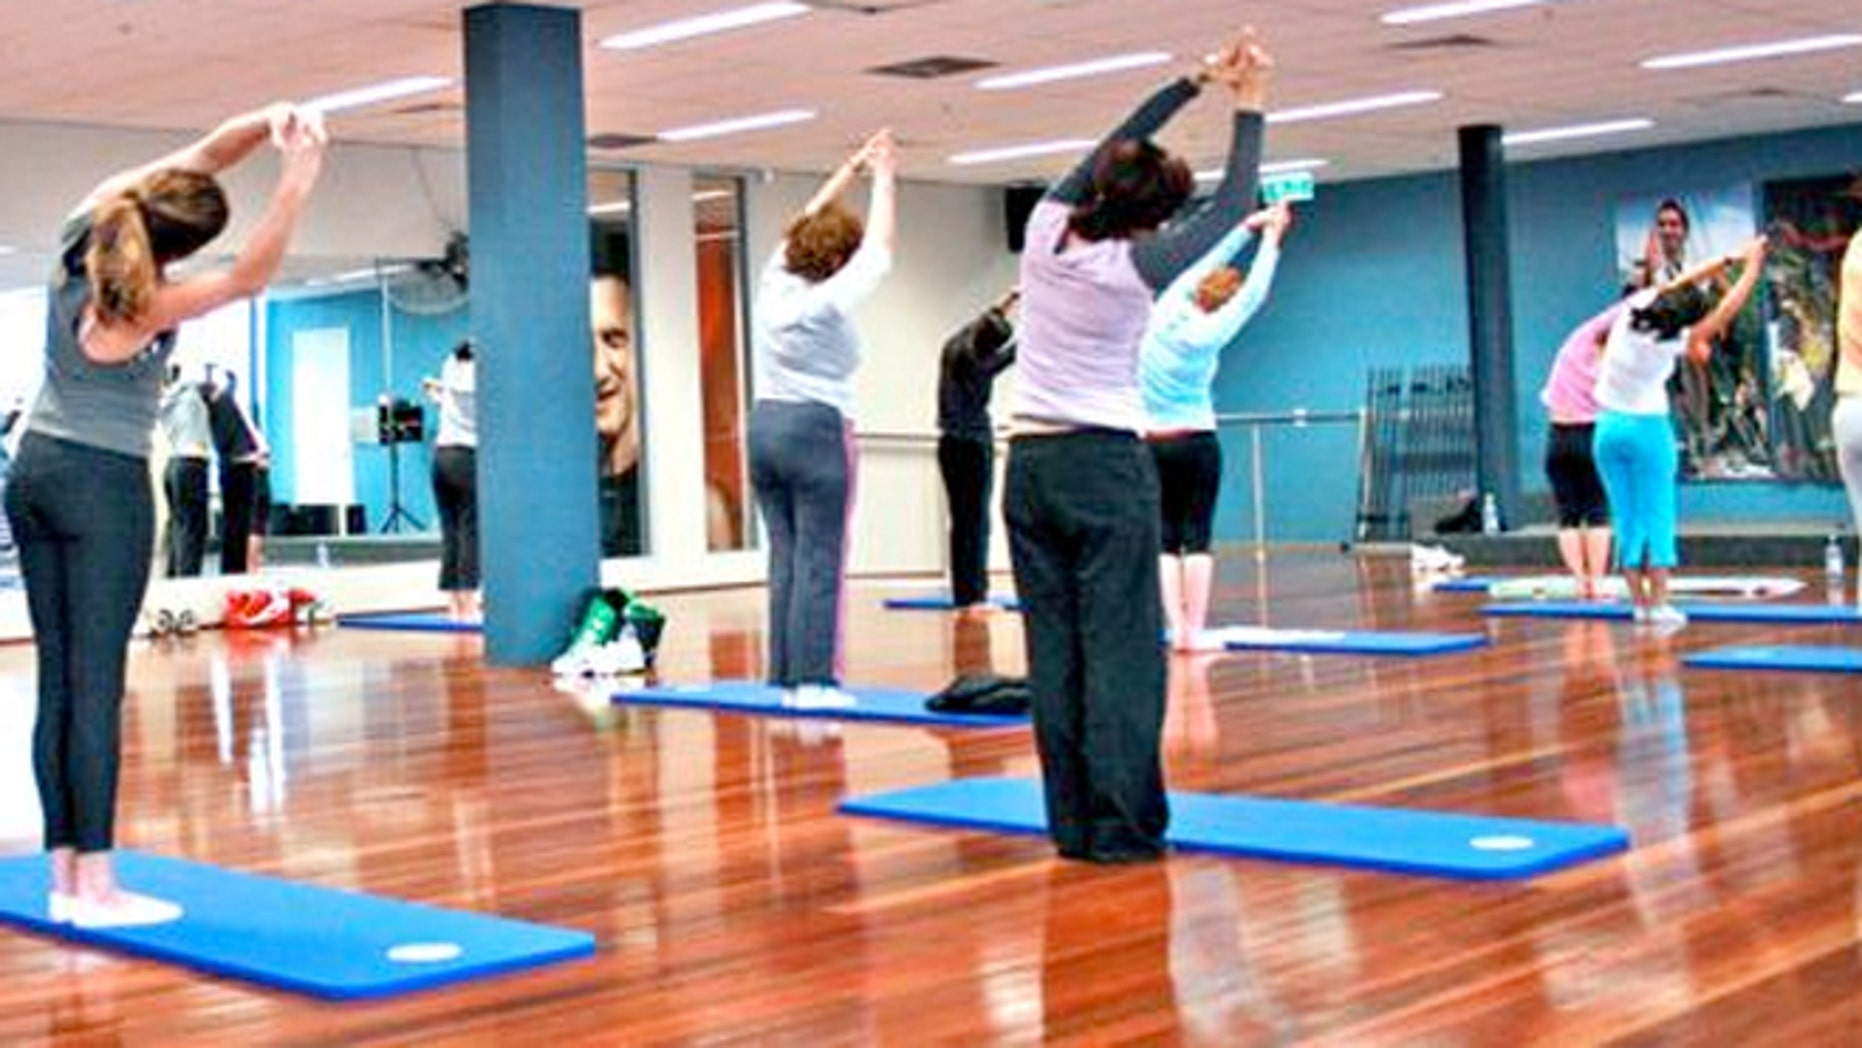 Exercise enthusiasts traveling through O'Hare Airport can now get their zen on.